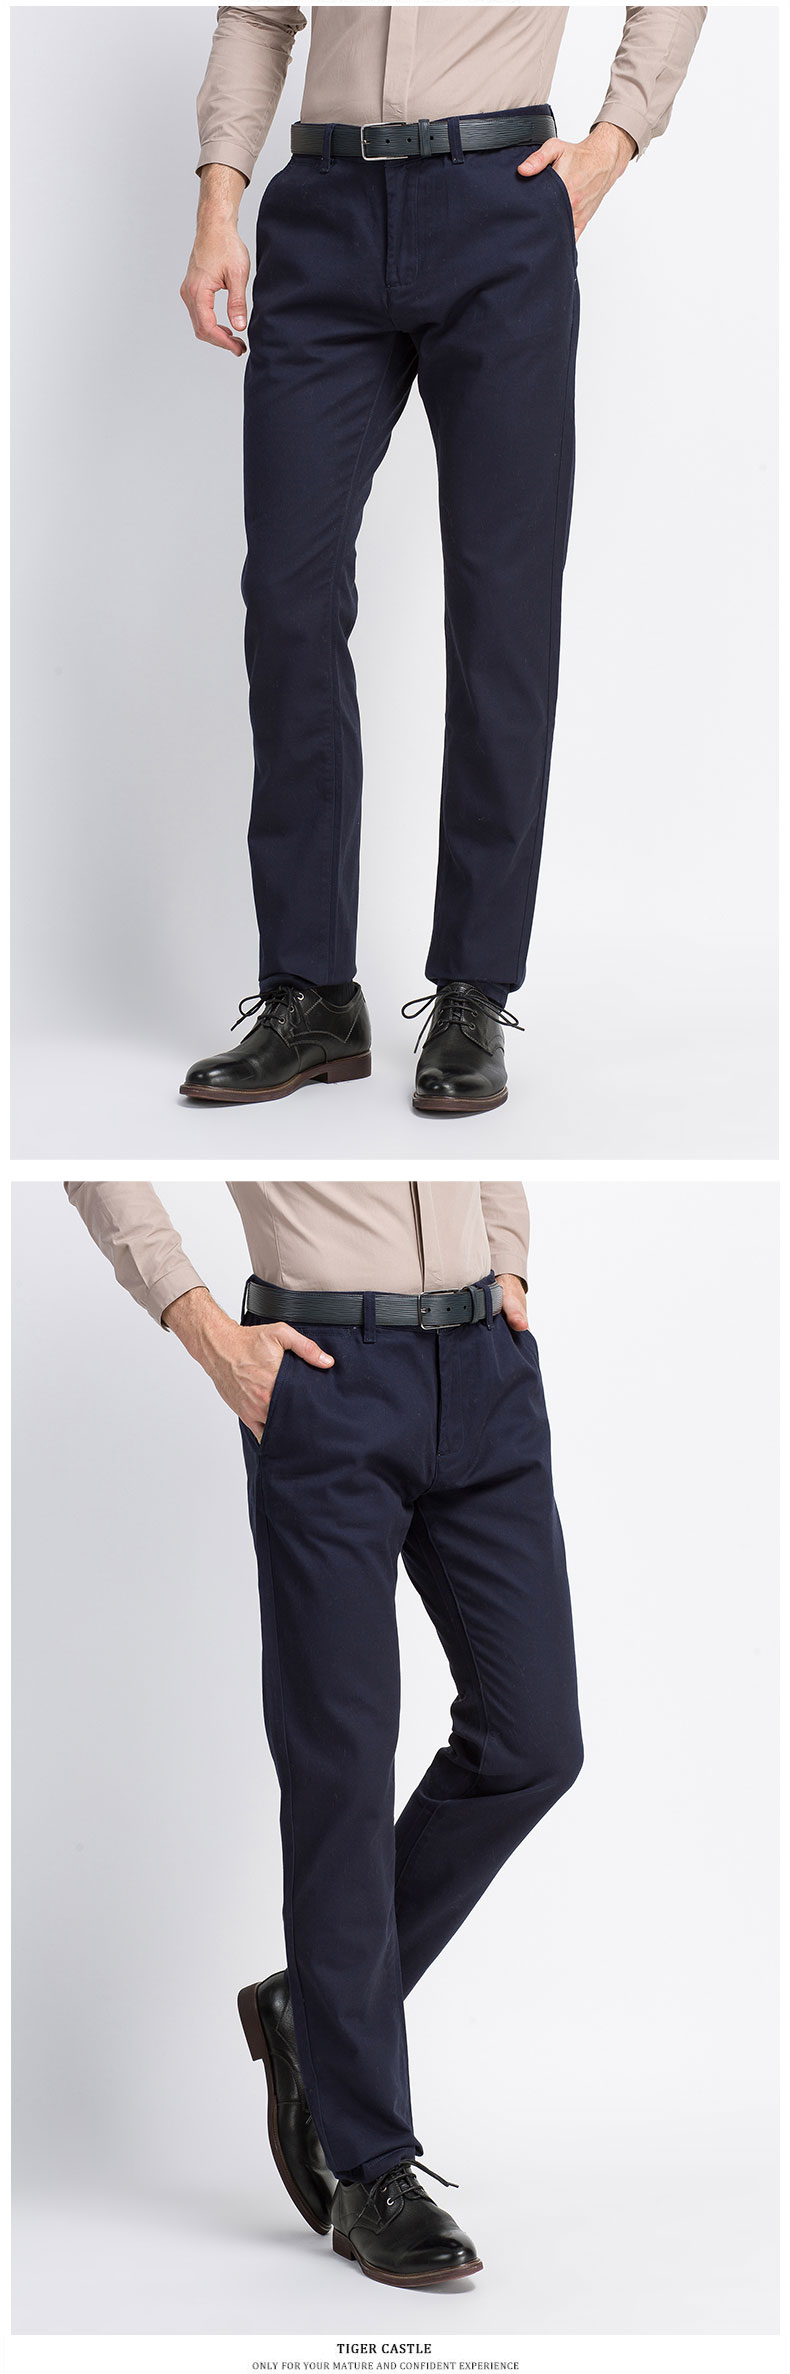 Spring Solid Mens Casual Pants Cotton Stretch Black Mens Slim Fit Long Trousers Fashion Zipper Fly High Quality Brand Clothing 16